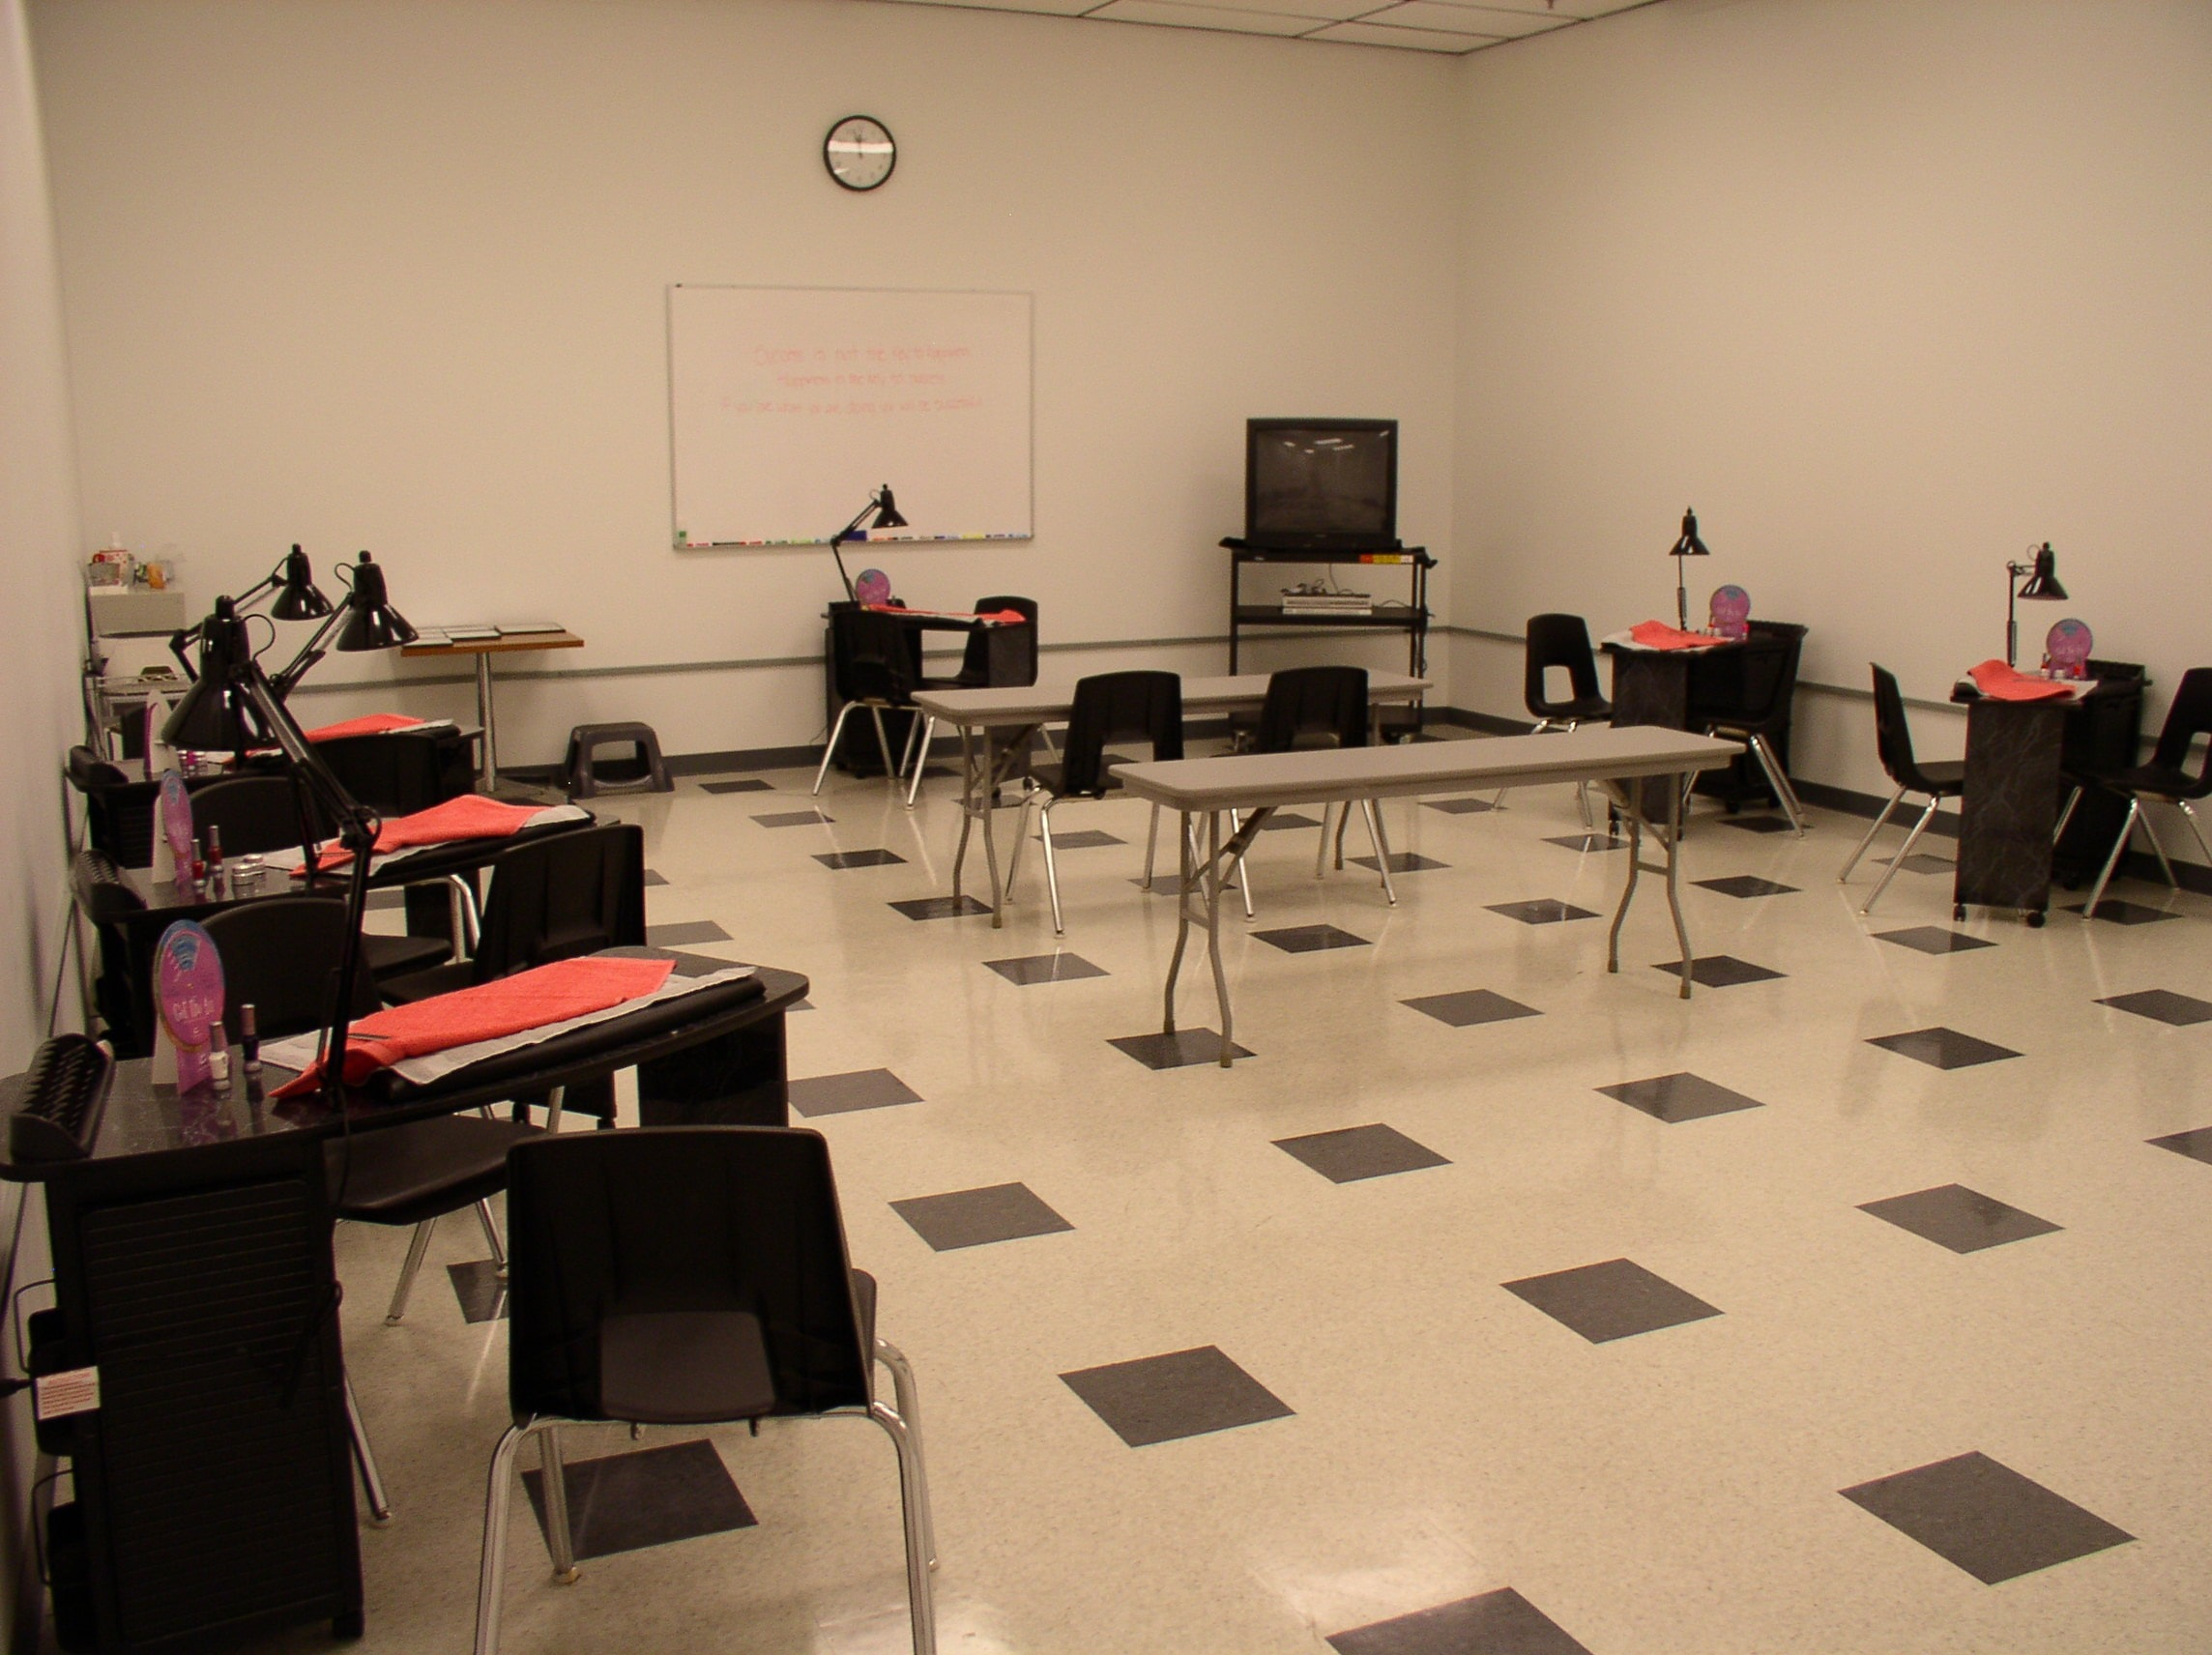 Classroom Design Theory : Gallery bellus academy